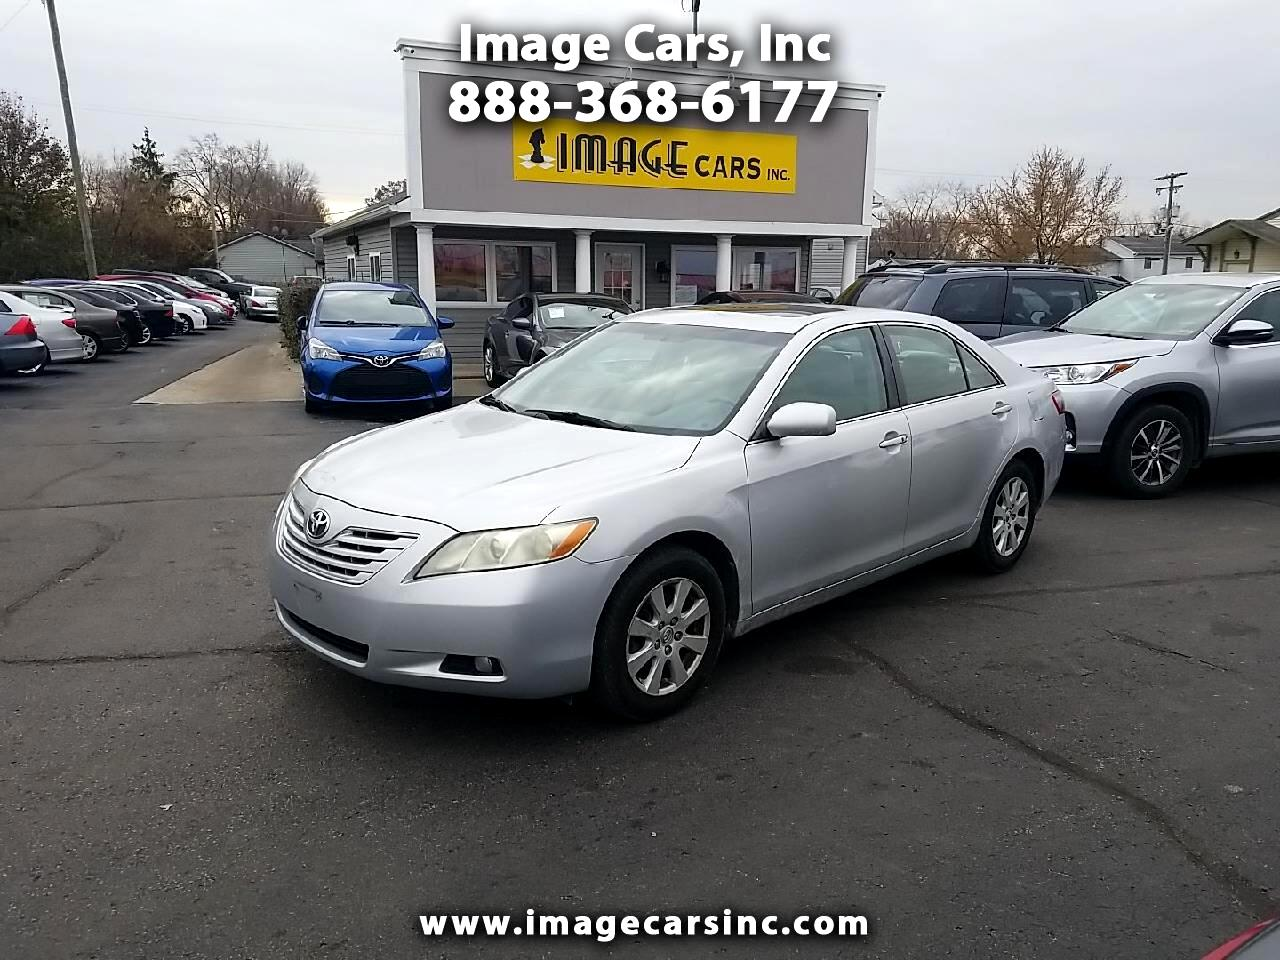 Toyota Camry 4dr Sdn XLE V6 Auto 2007